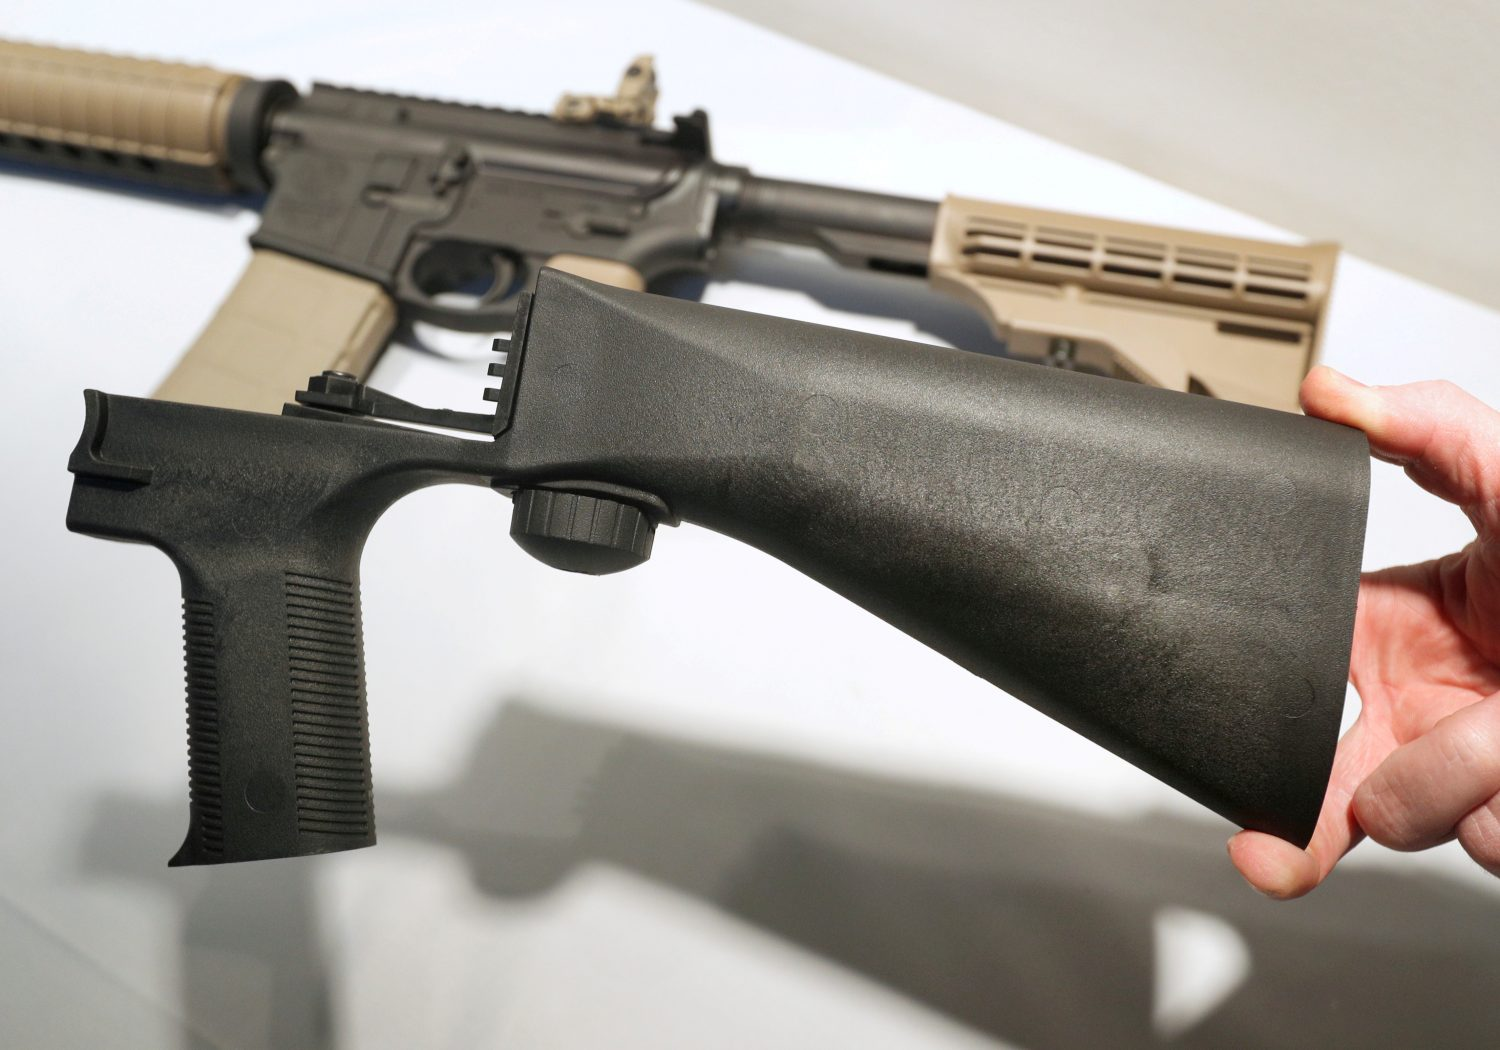 FILE PHOTO: A bump fire stock that attaches to a semi-automatic rifle to increase the firing rate is seen at Good Guys Gun Shop in Orem, Utah, U.S., October 4, 2017. REUTERS/George Frey/File Photo